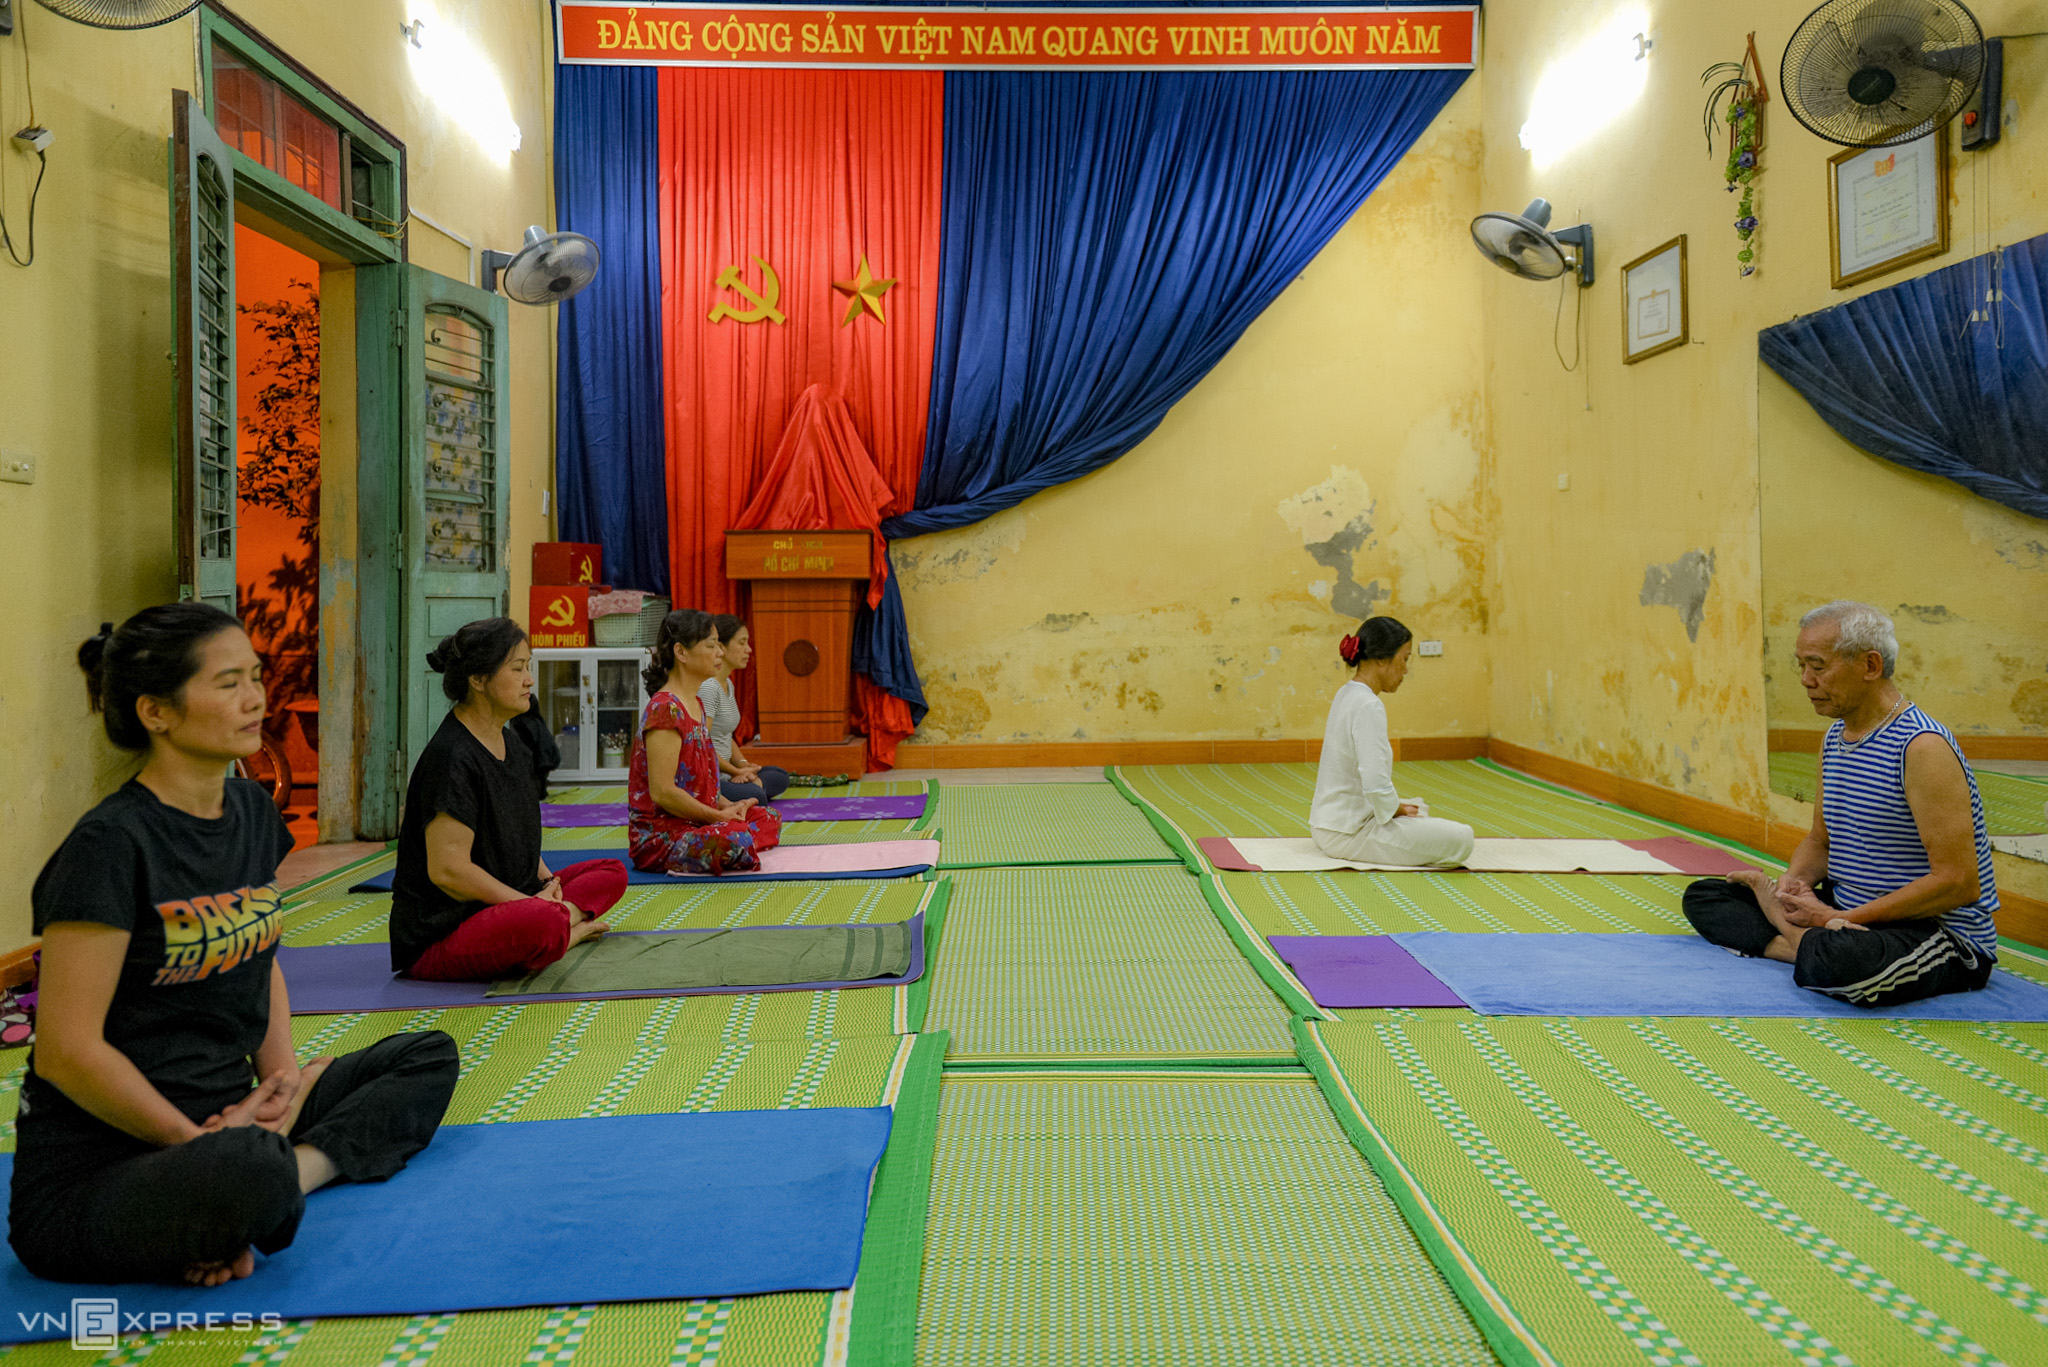 Vietnam's oldest yoga instructor on living a long, happy life